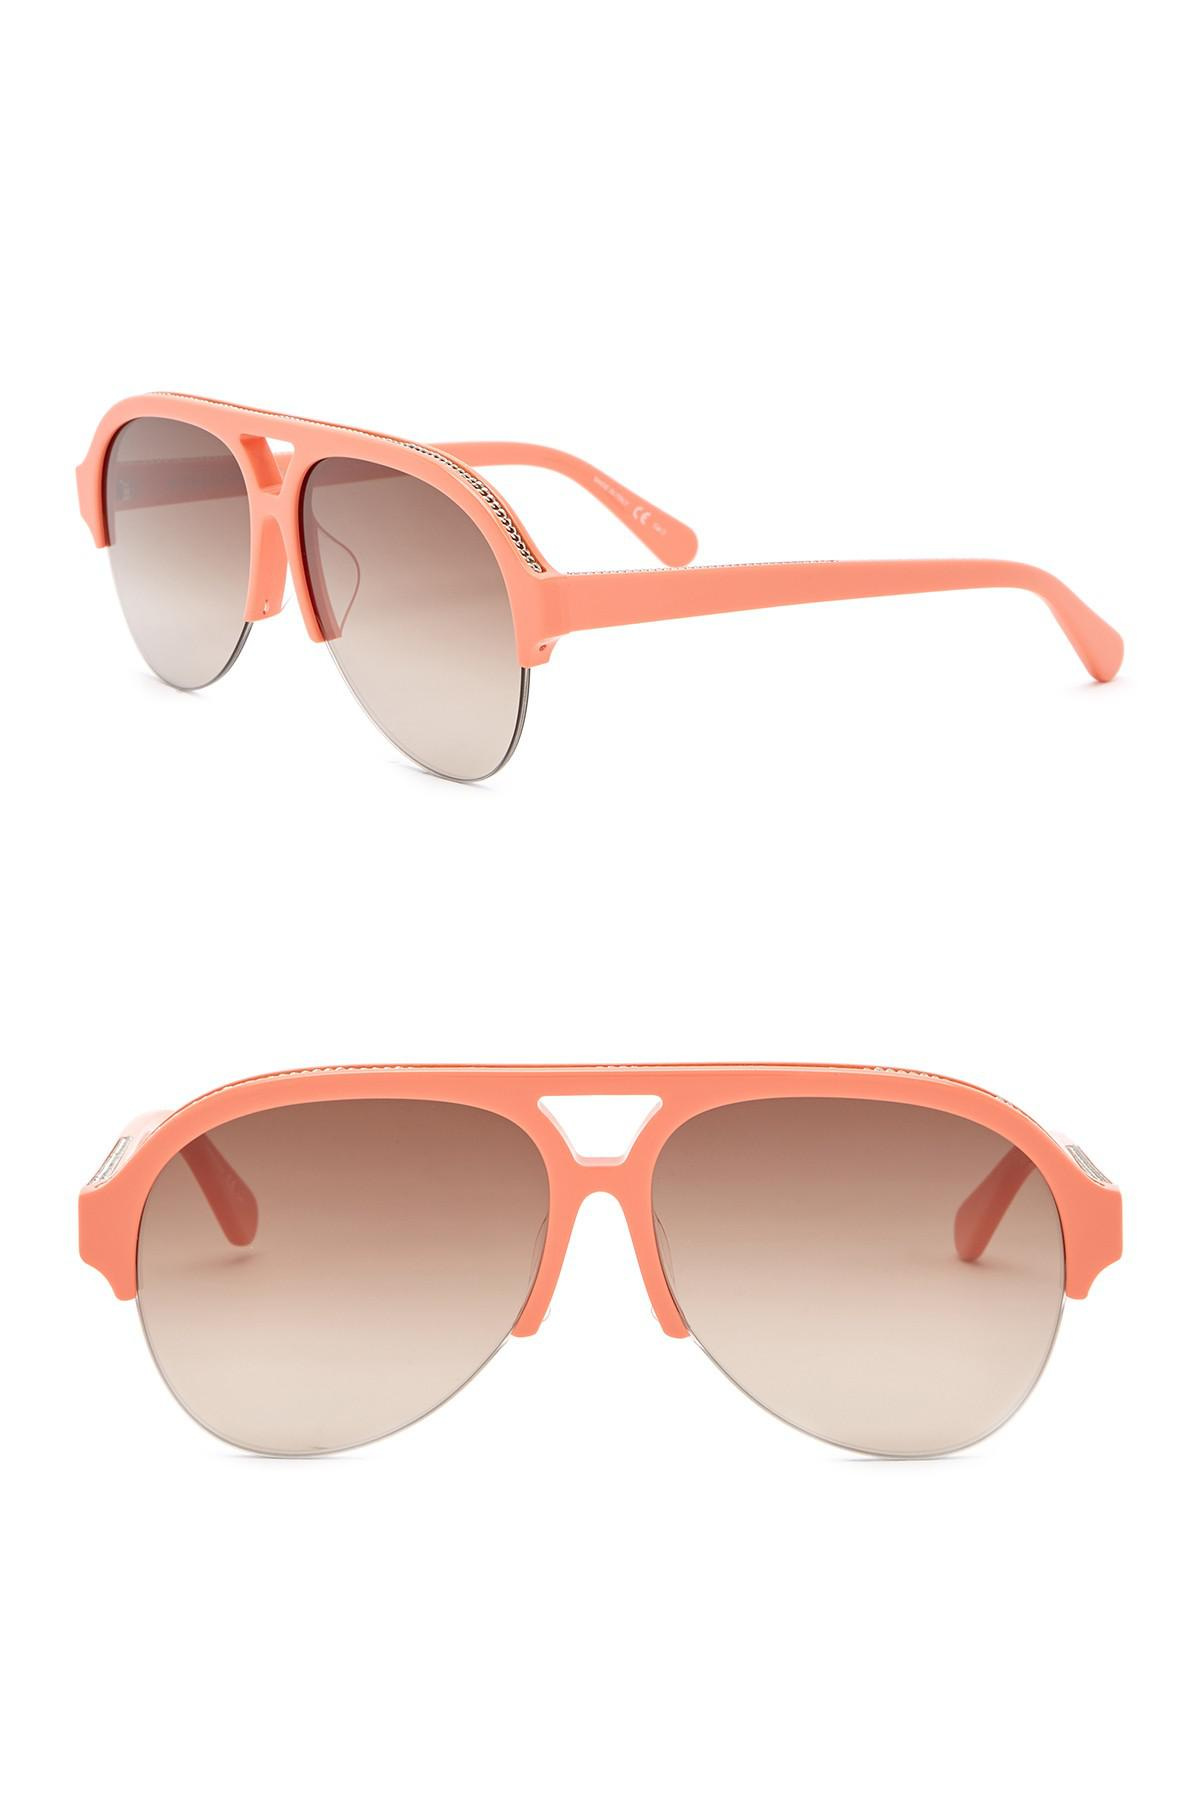 cf1cdb774c9f Stella McCartney. Women's Pink 58mm Chain Aviator Sunglasses. $330 $120  From Nordstrom Rack. Free shipping with Nordstrom Rack on orders over ...